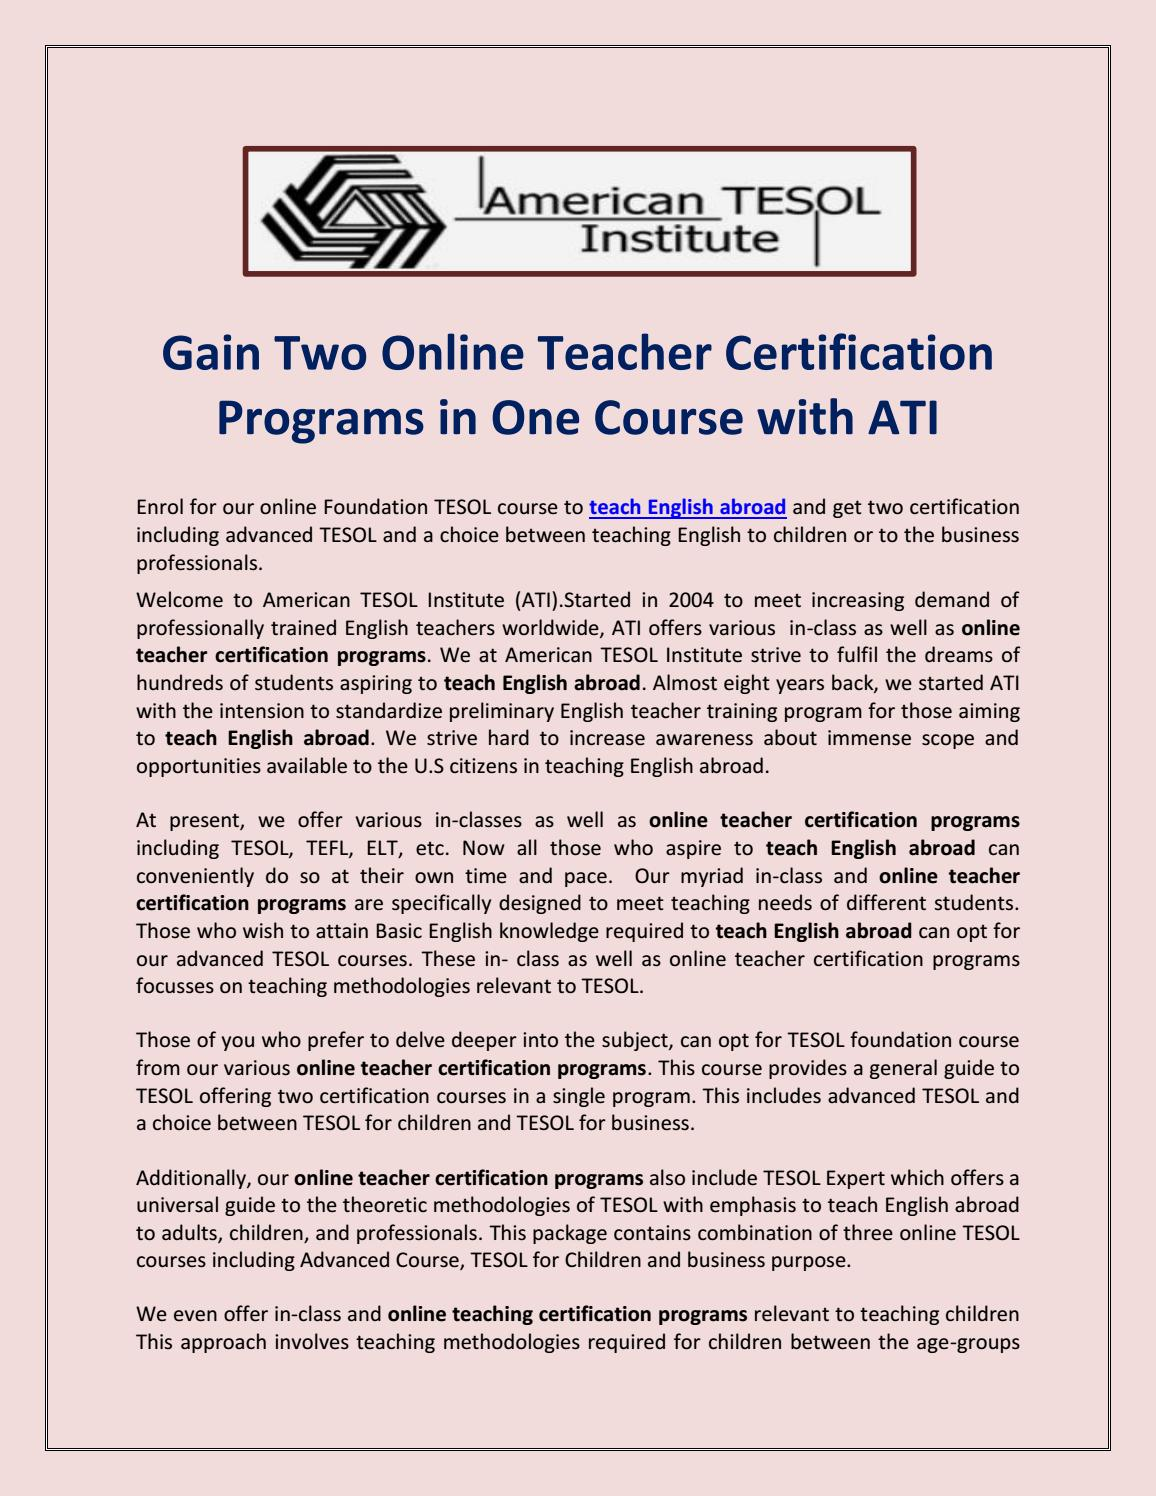 Online Teacher Certification Programs By Americantesol2018 Issuu